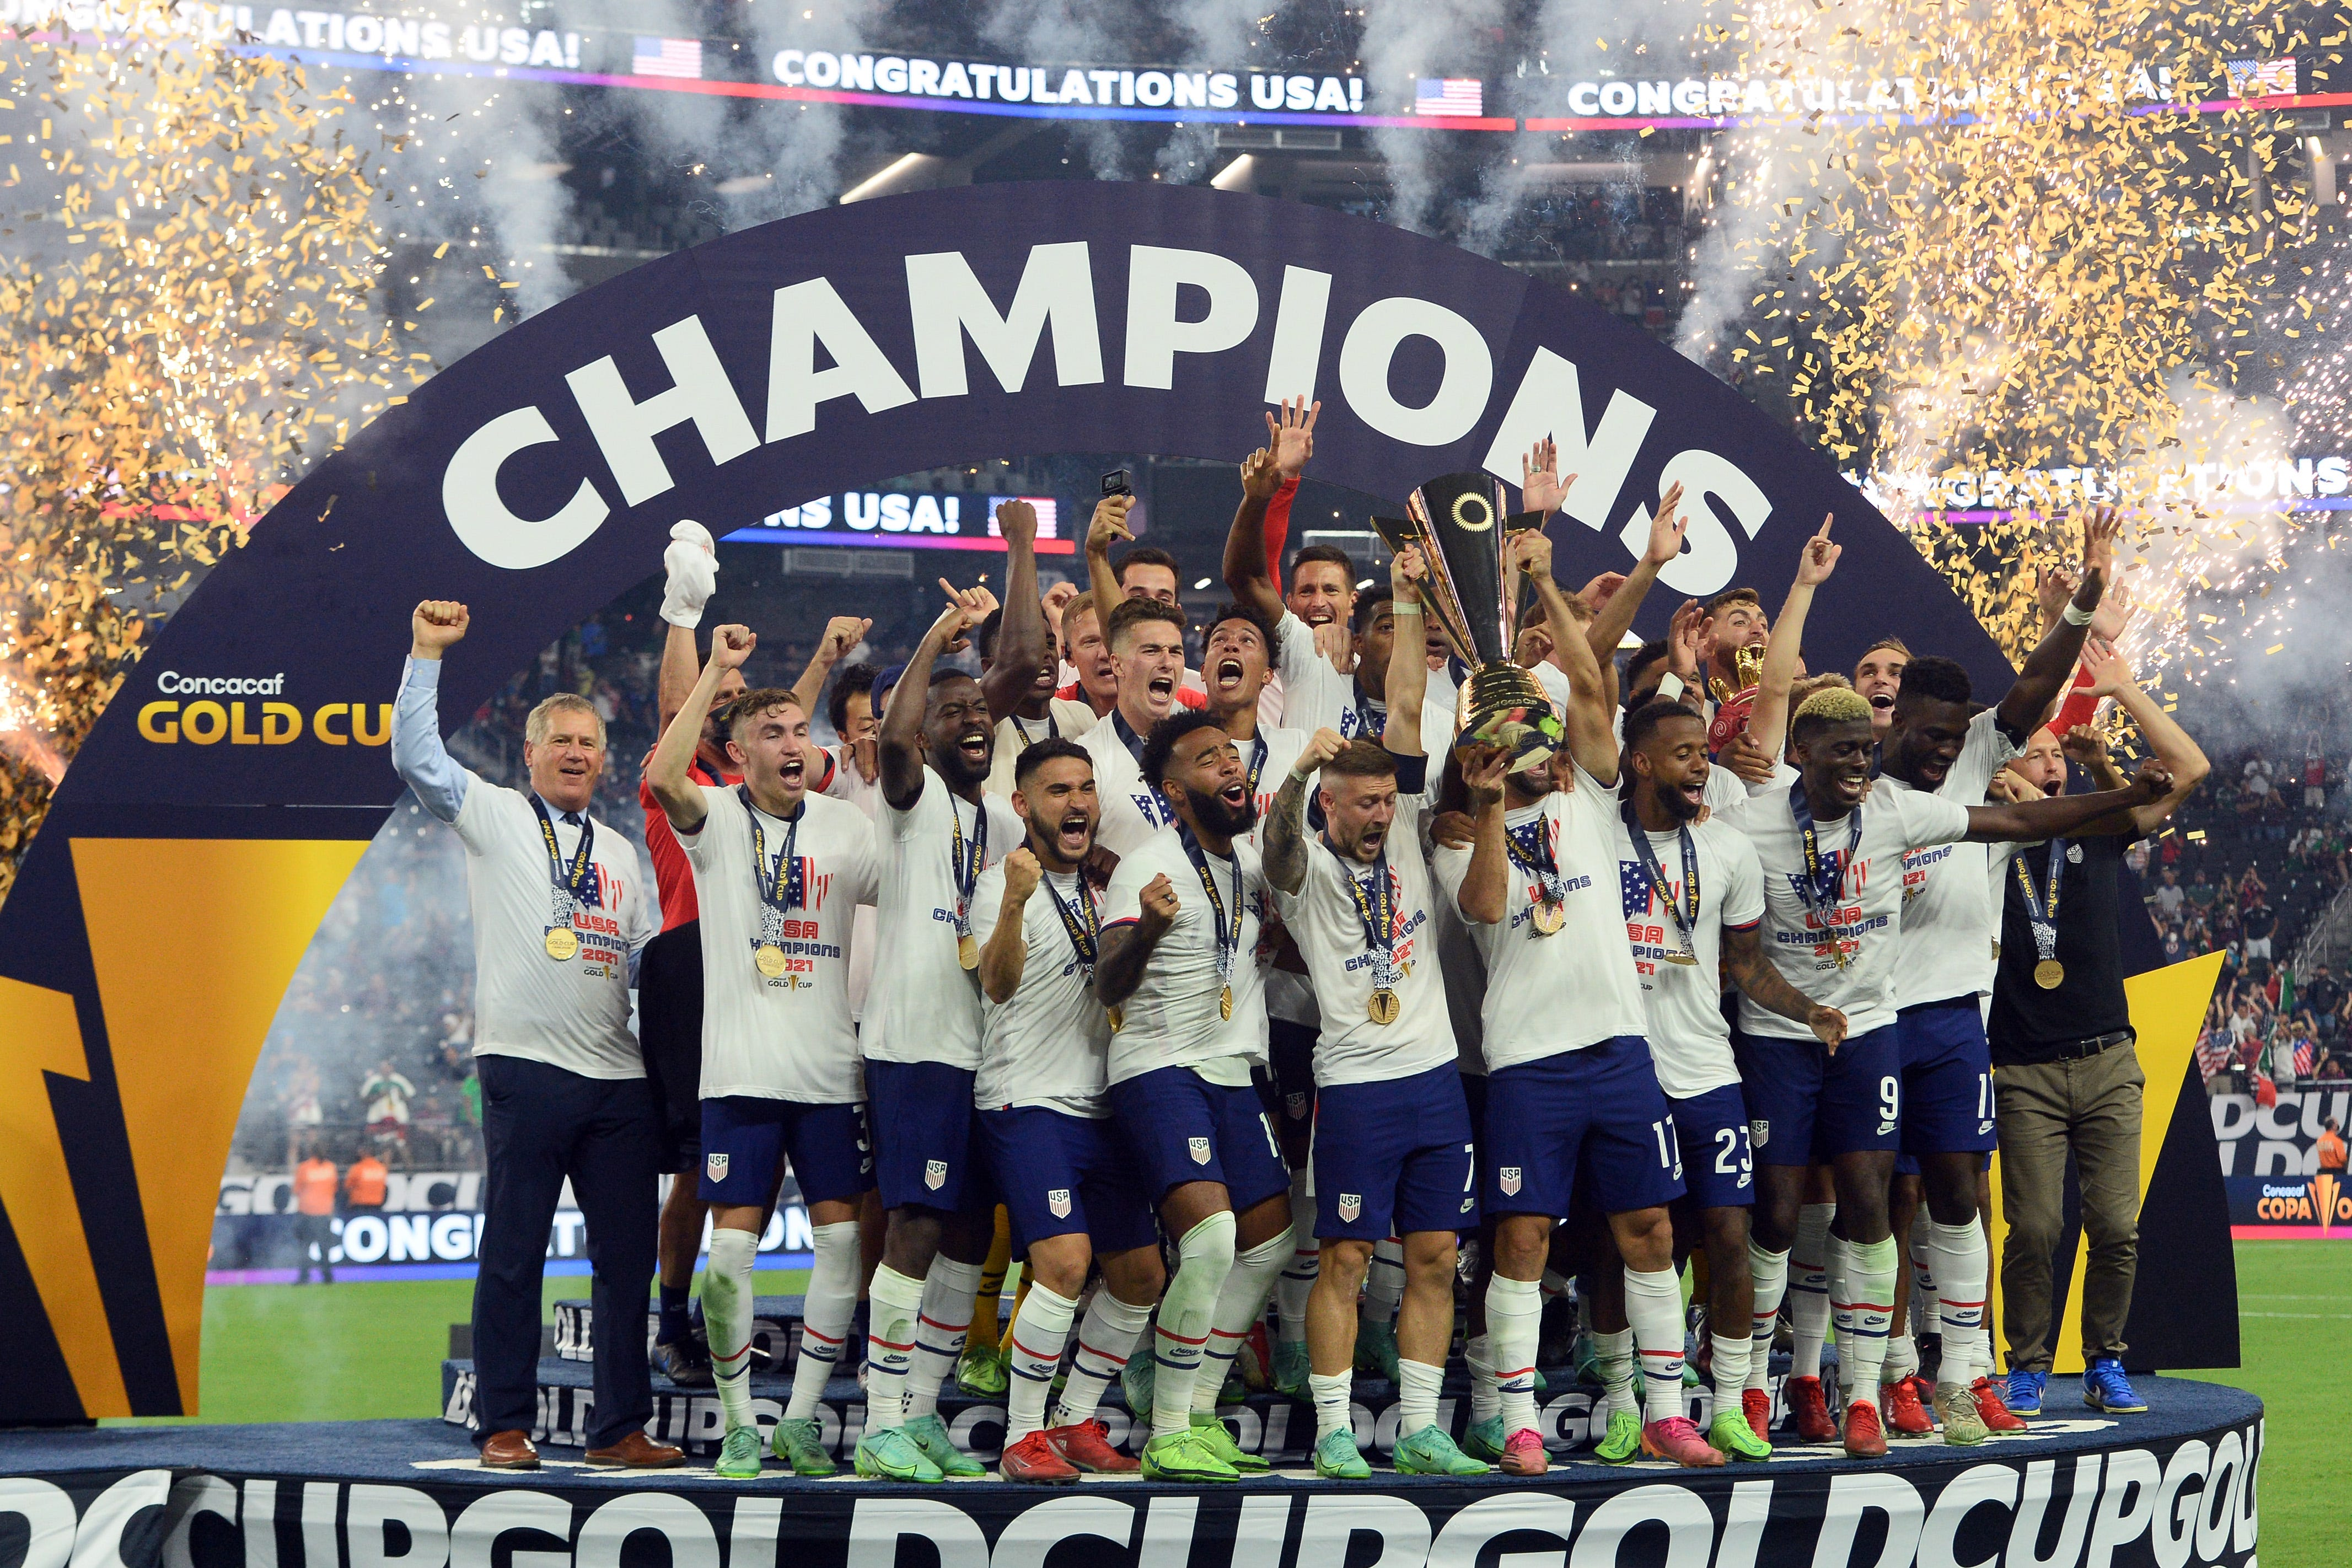 U.S. men s national soccer team defeats Mexico in Concacaf Gold Cup final, collects second trophy in two months